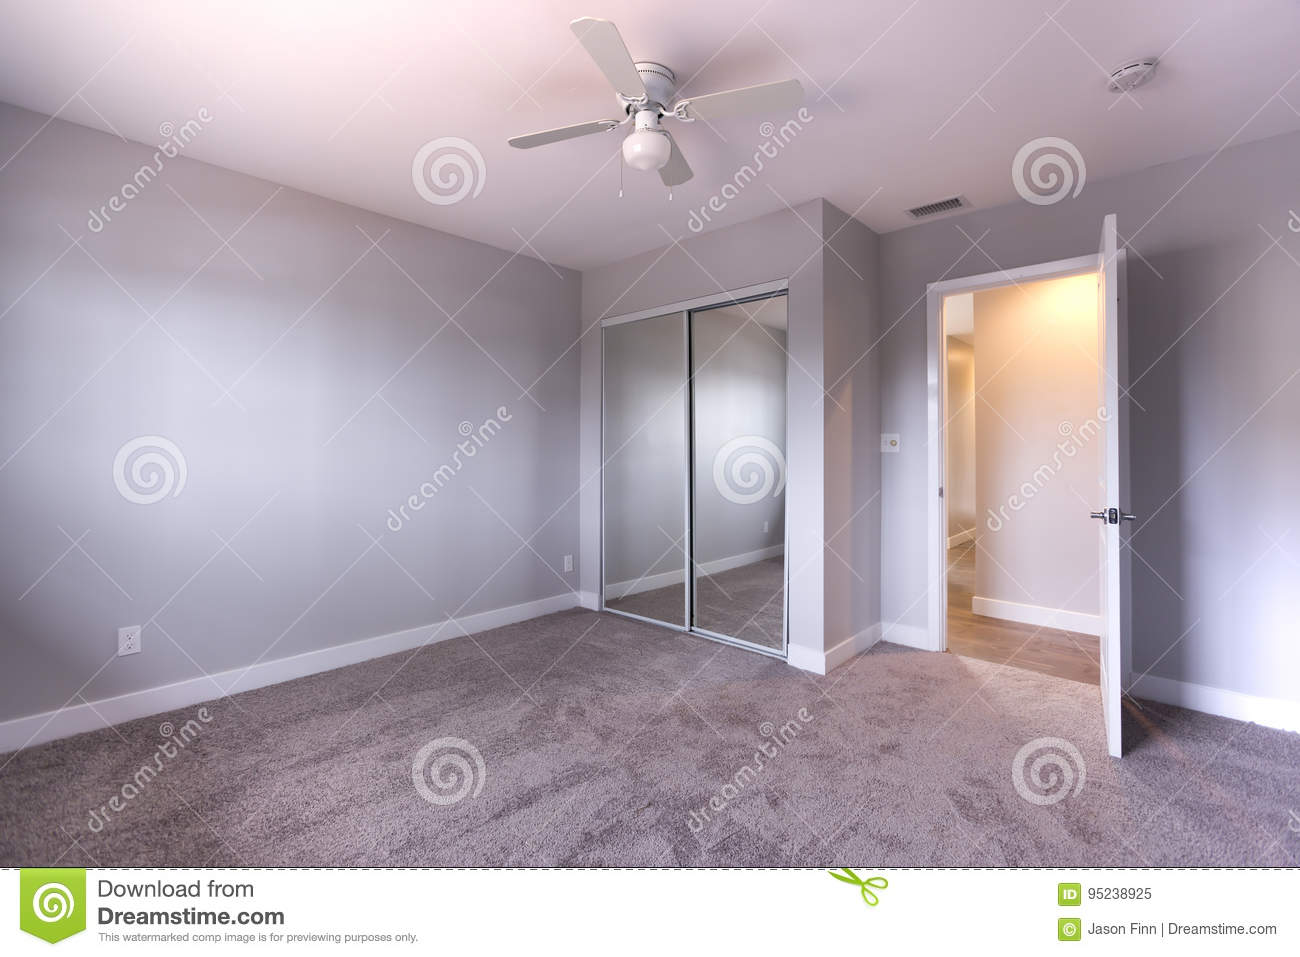 Empty Bedroom With Blue Walls And Carpet Stock Image Image Of Colors Model 95238925